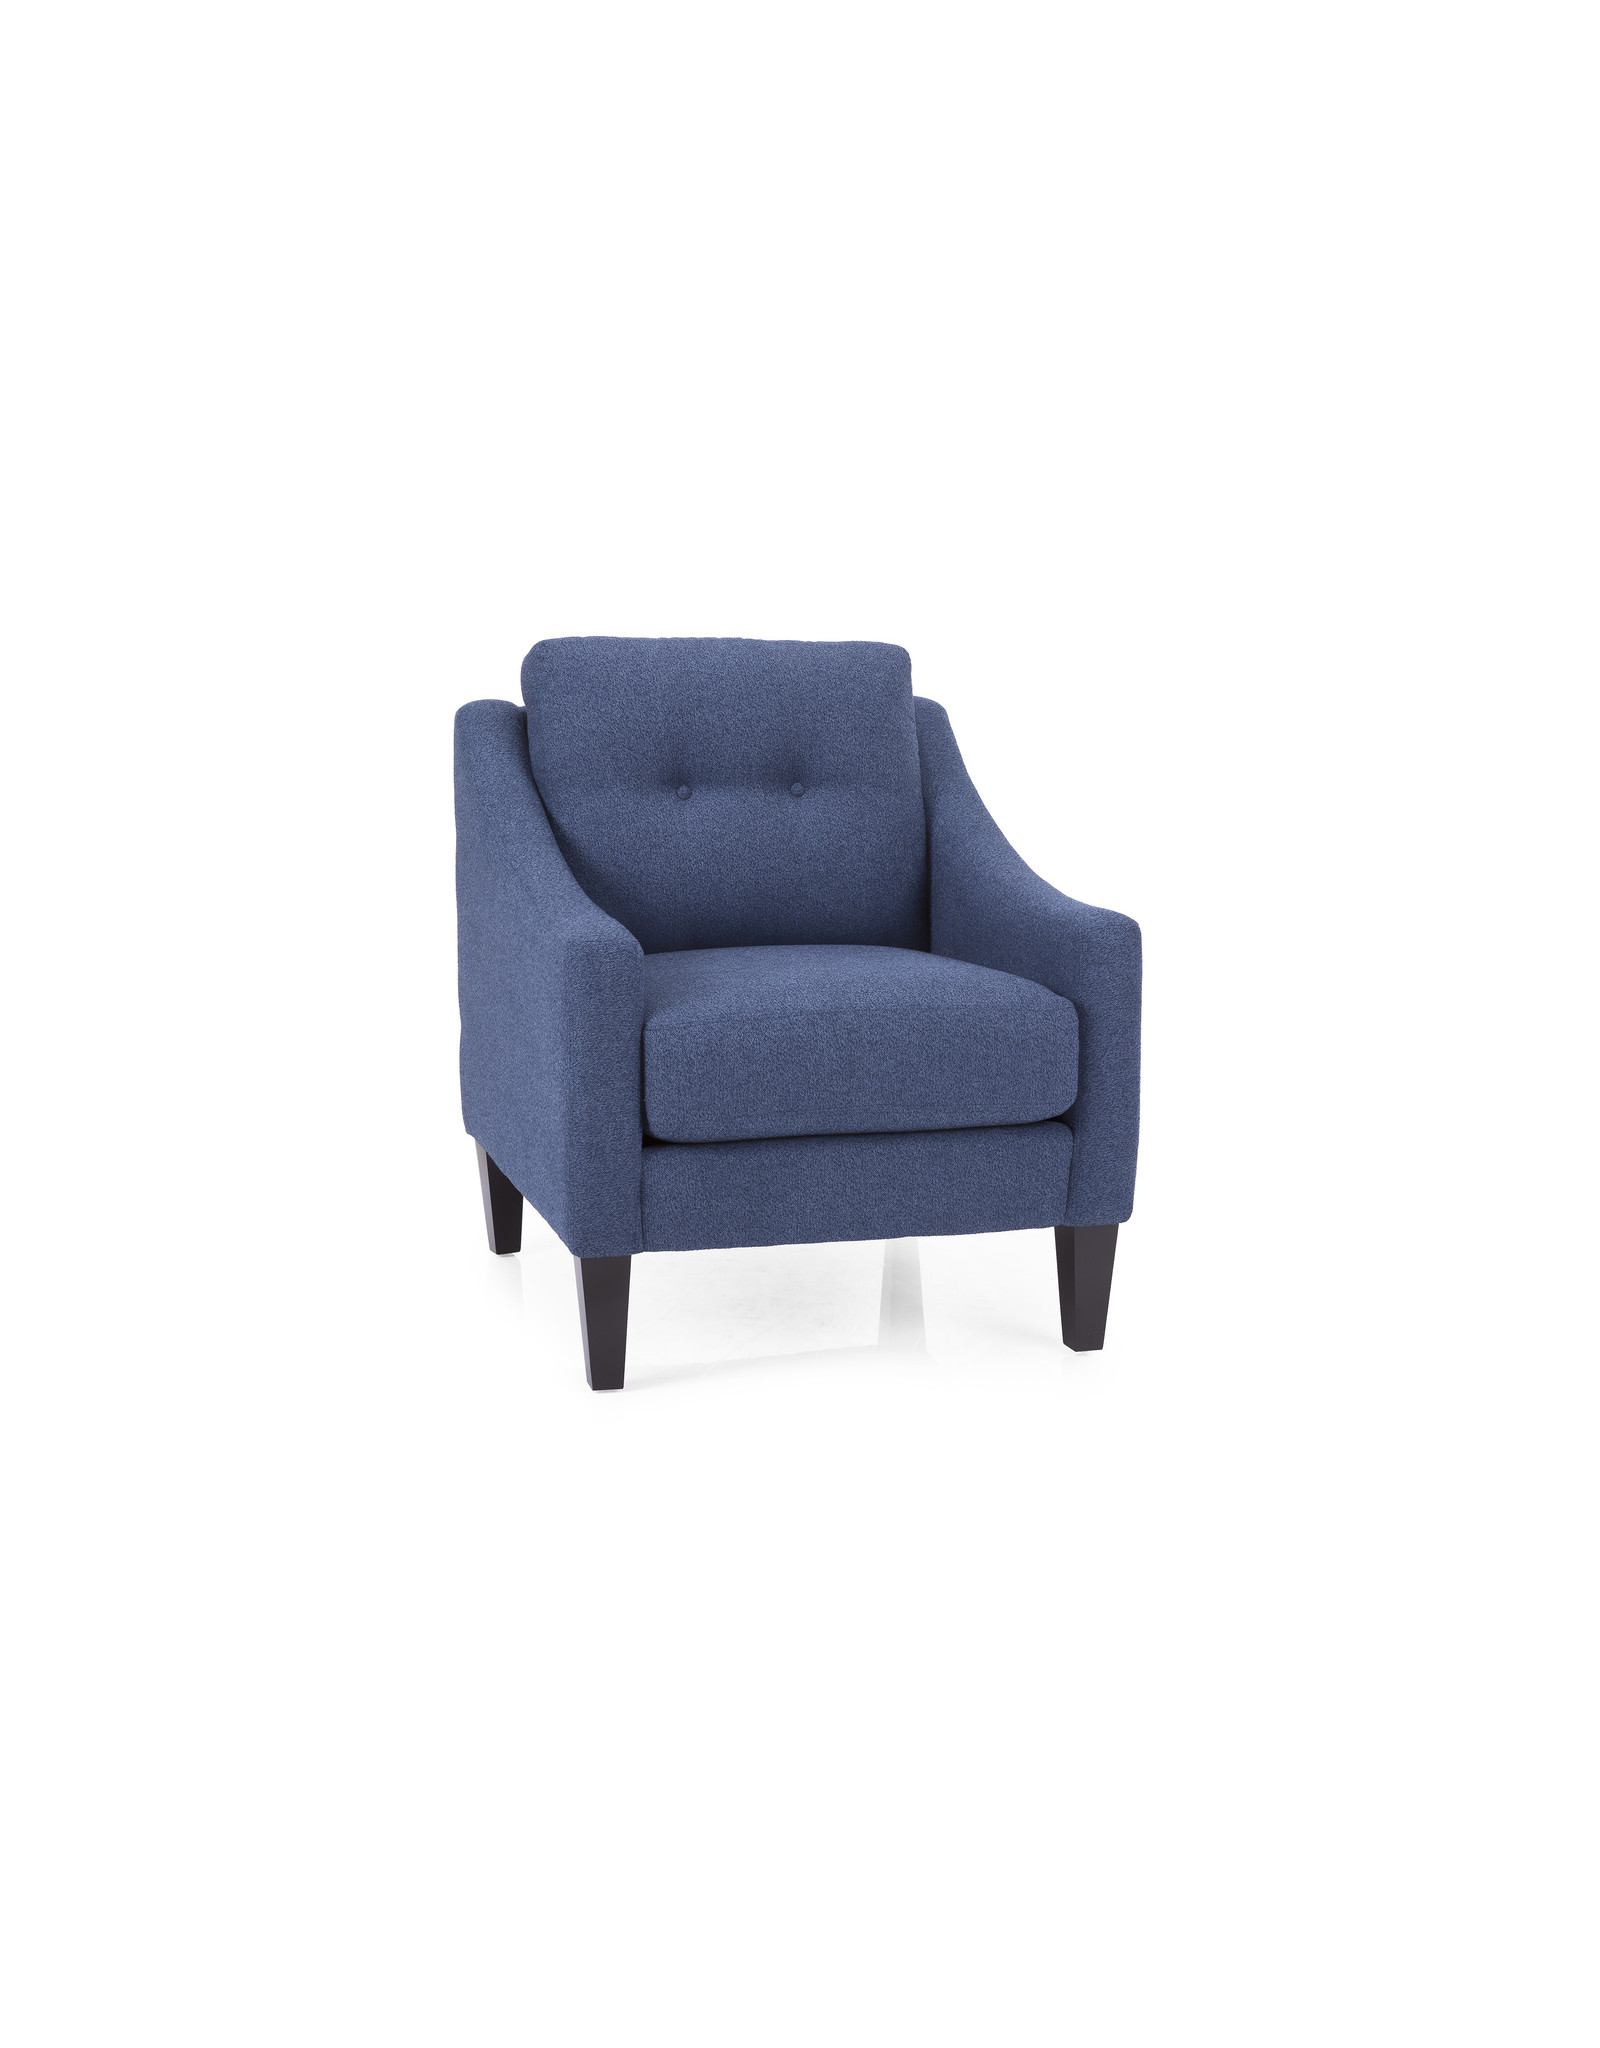 TCE 2467 Chair